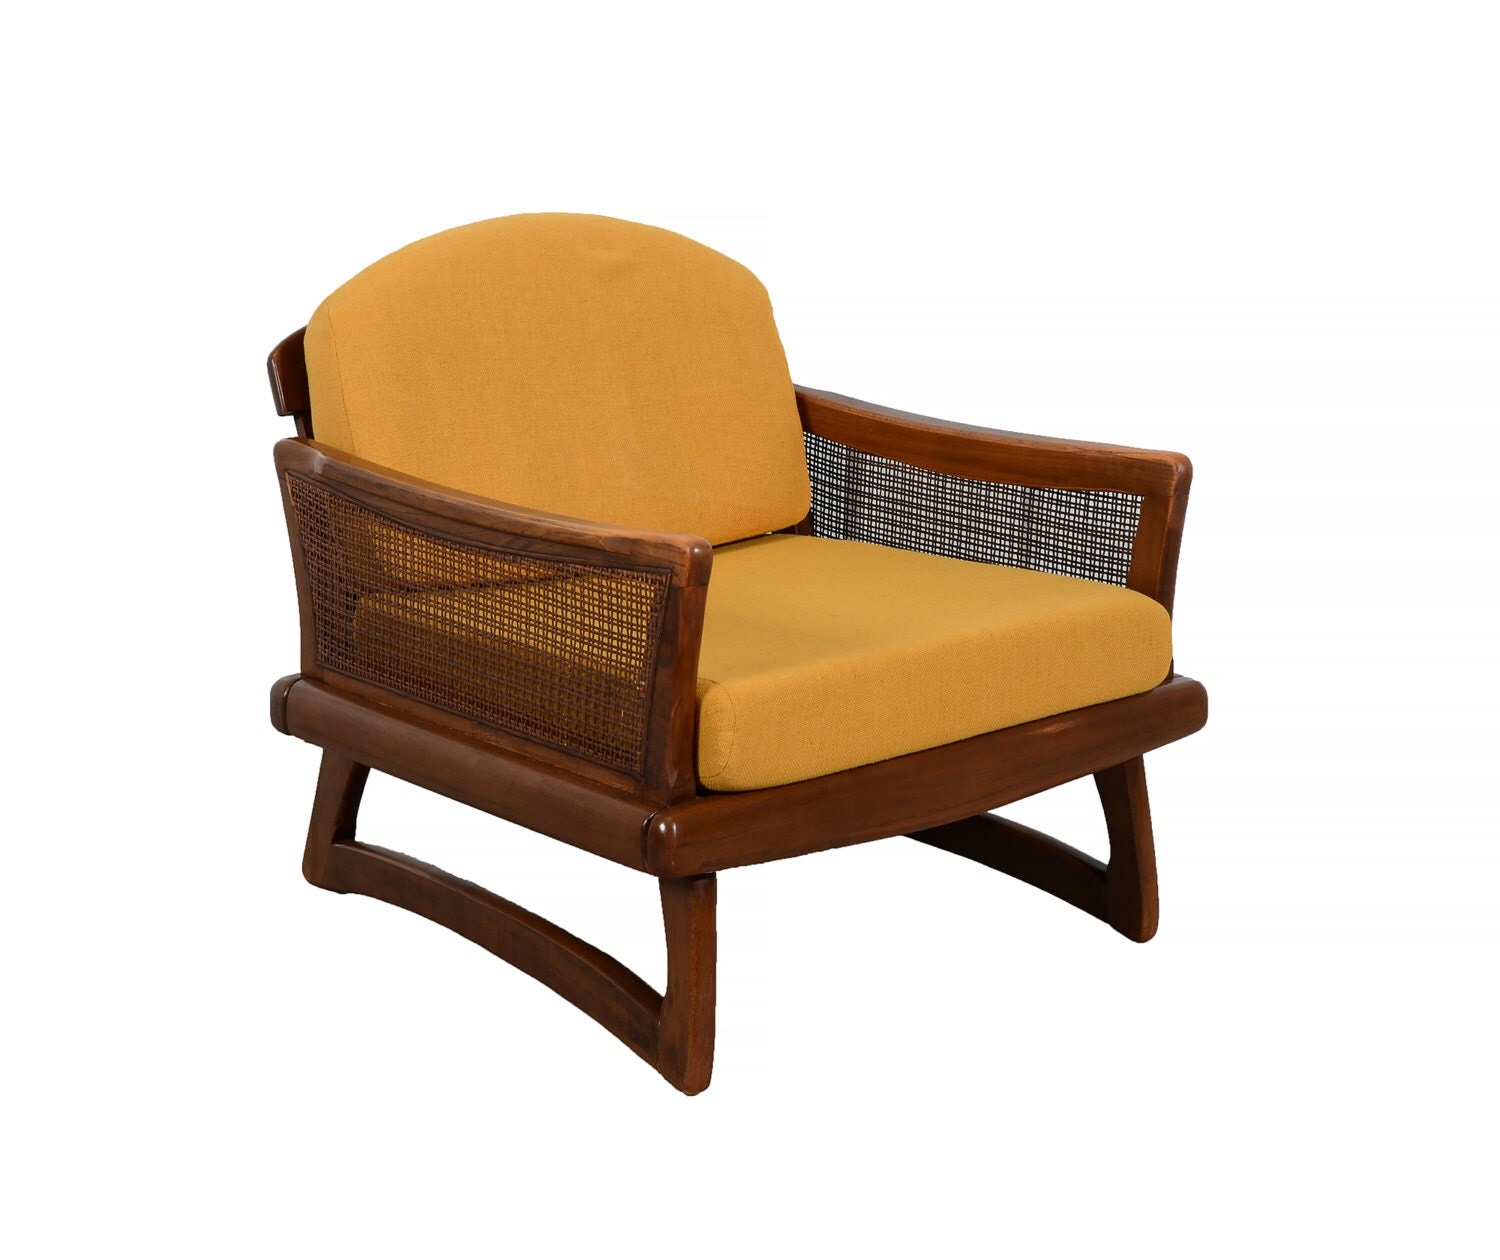 adrian pearsall lounge chair media chairs home theater in walnut mid century modern